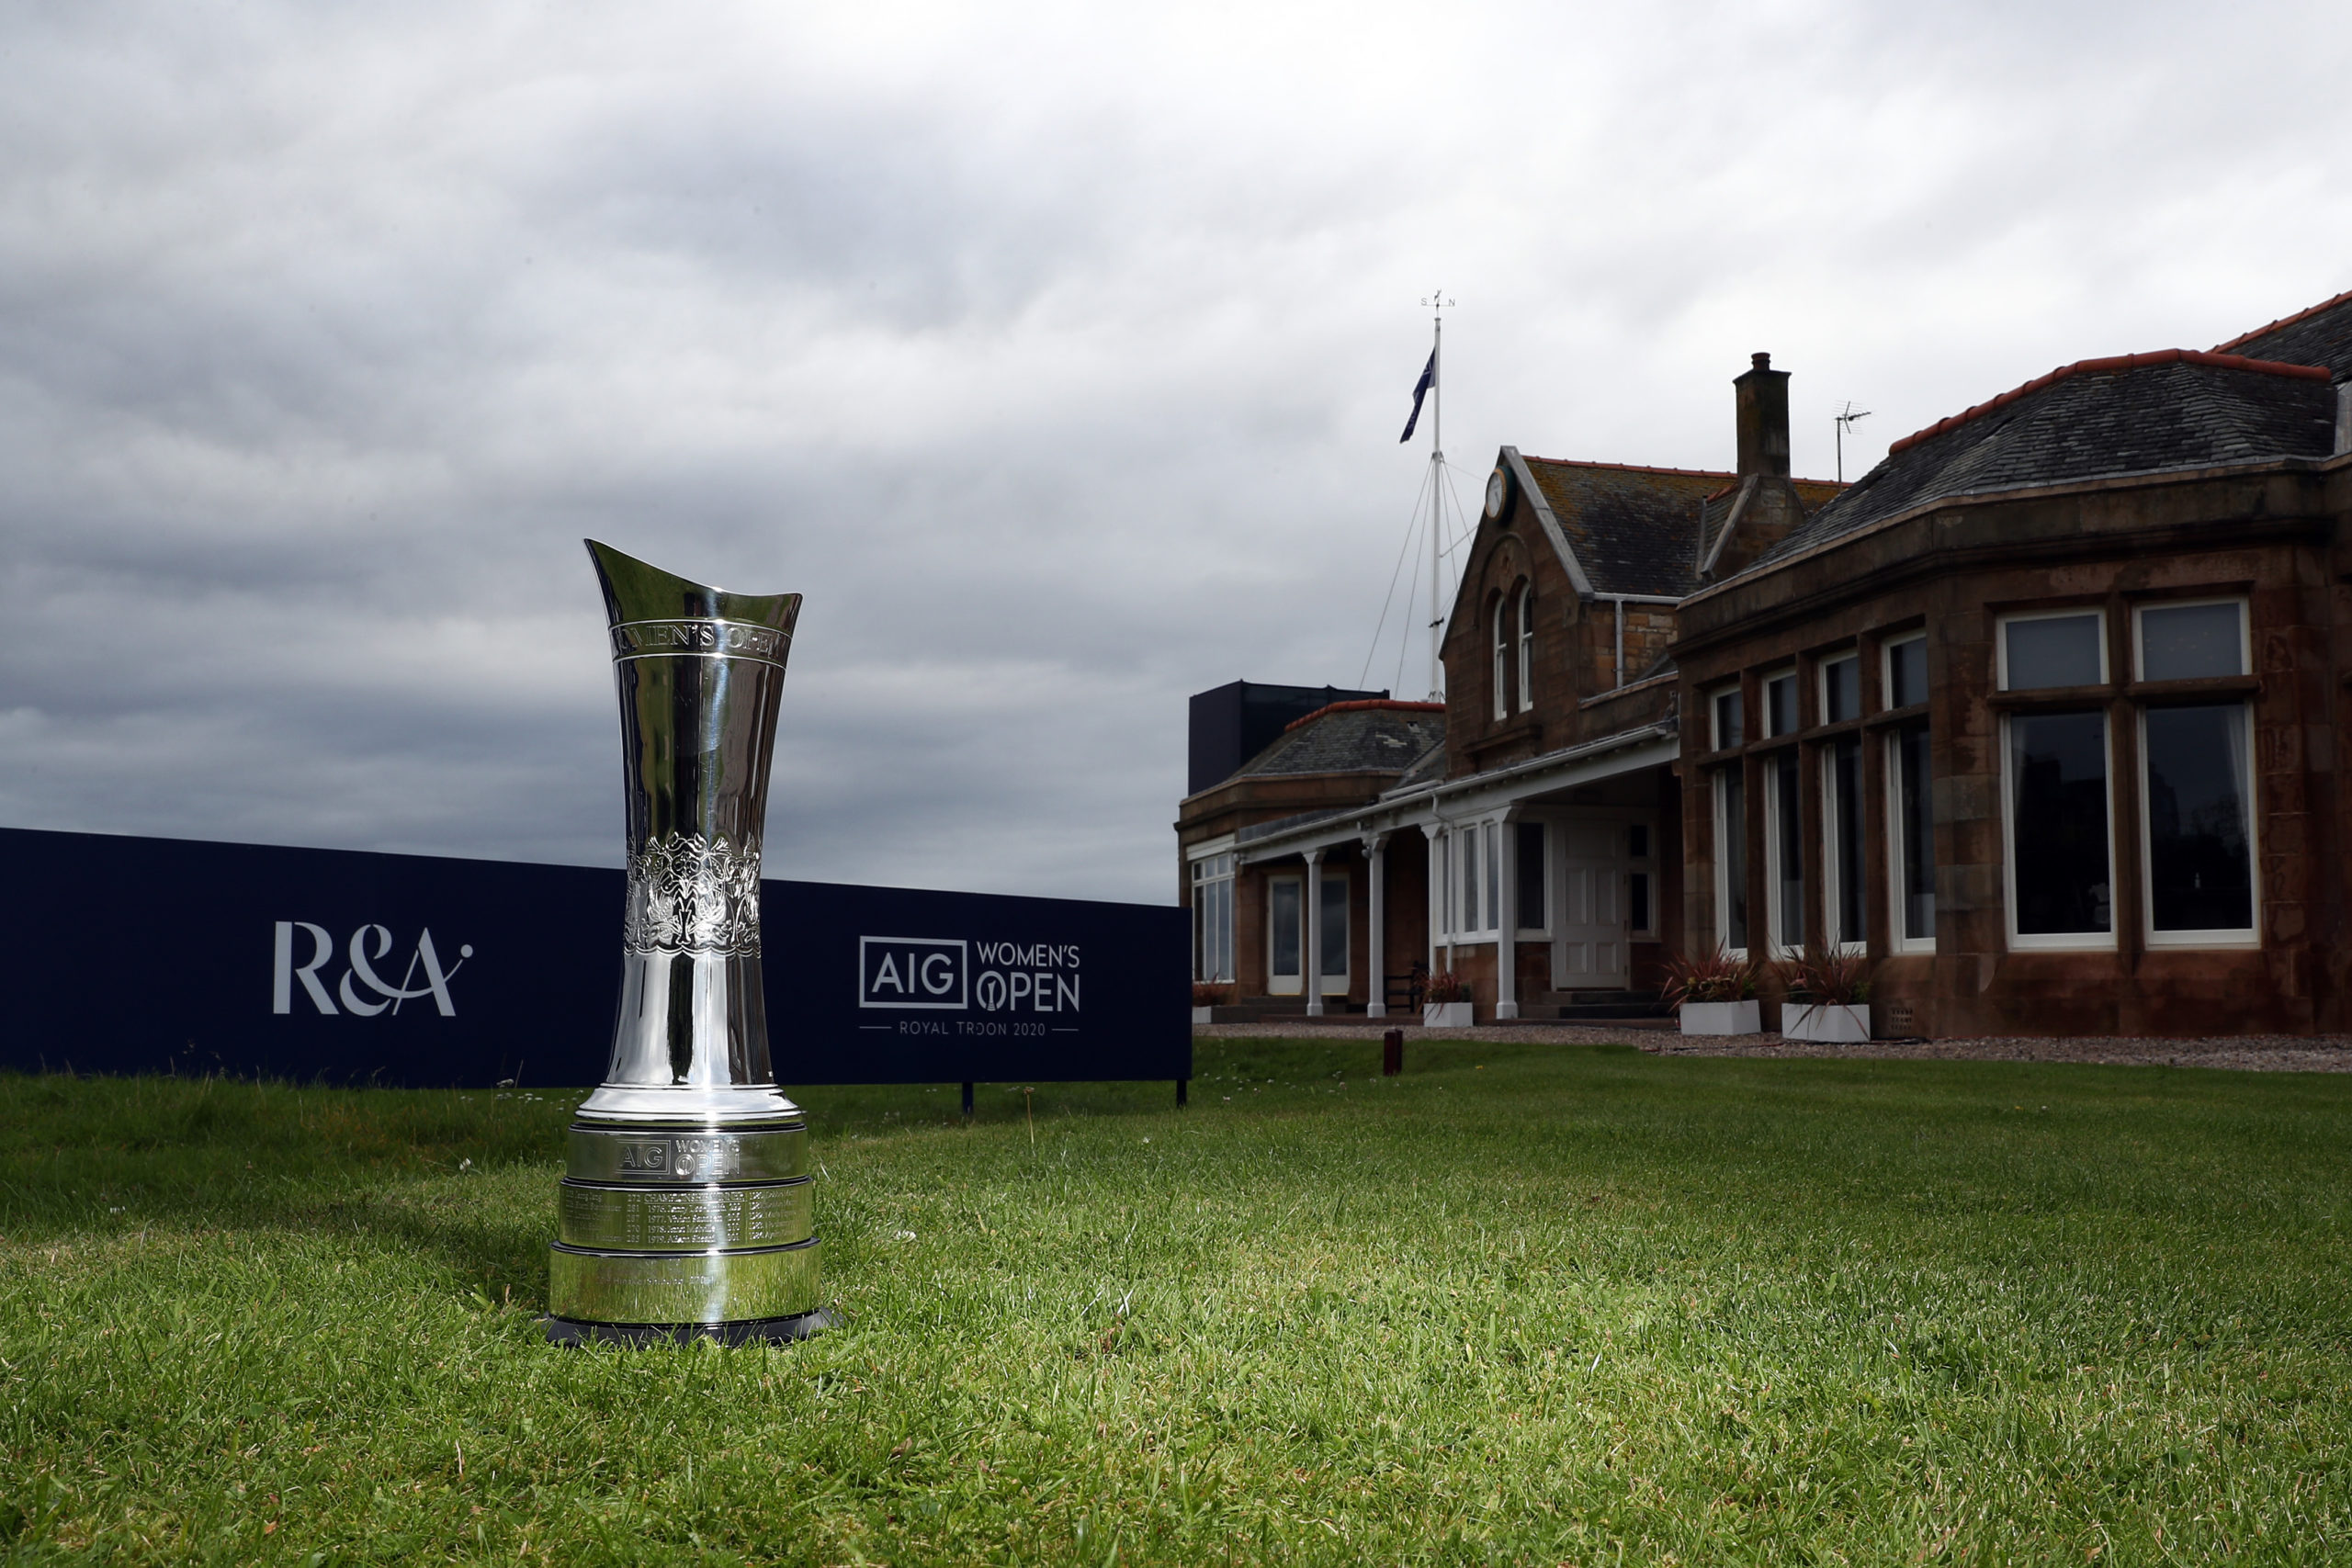 AIG Women's Open 2020 – Previews Day One